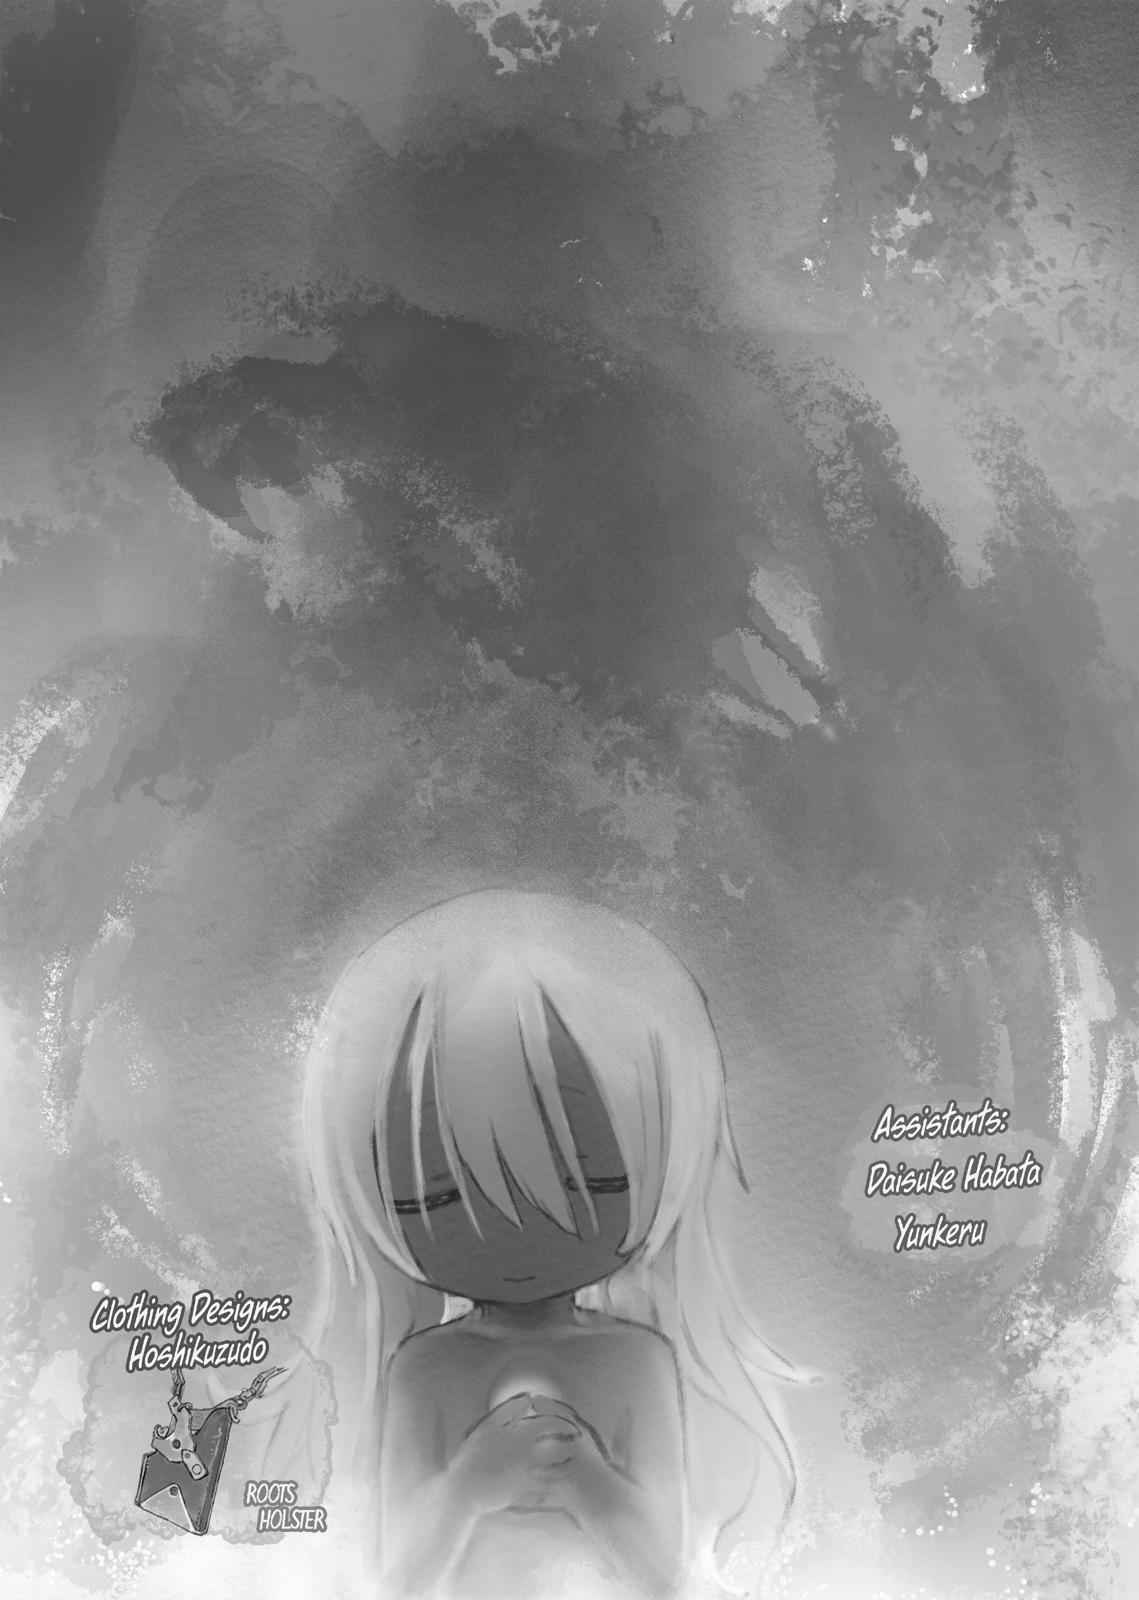 Made in Abyss Chapter 48 Page 7